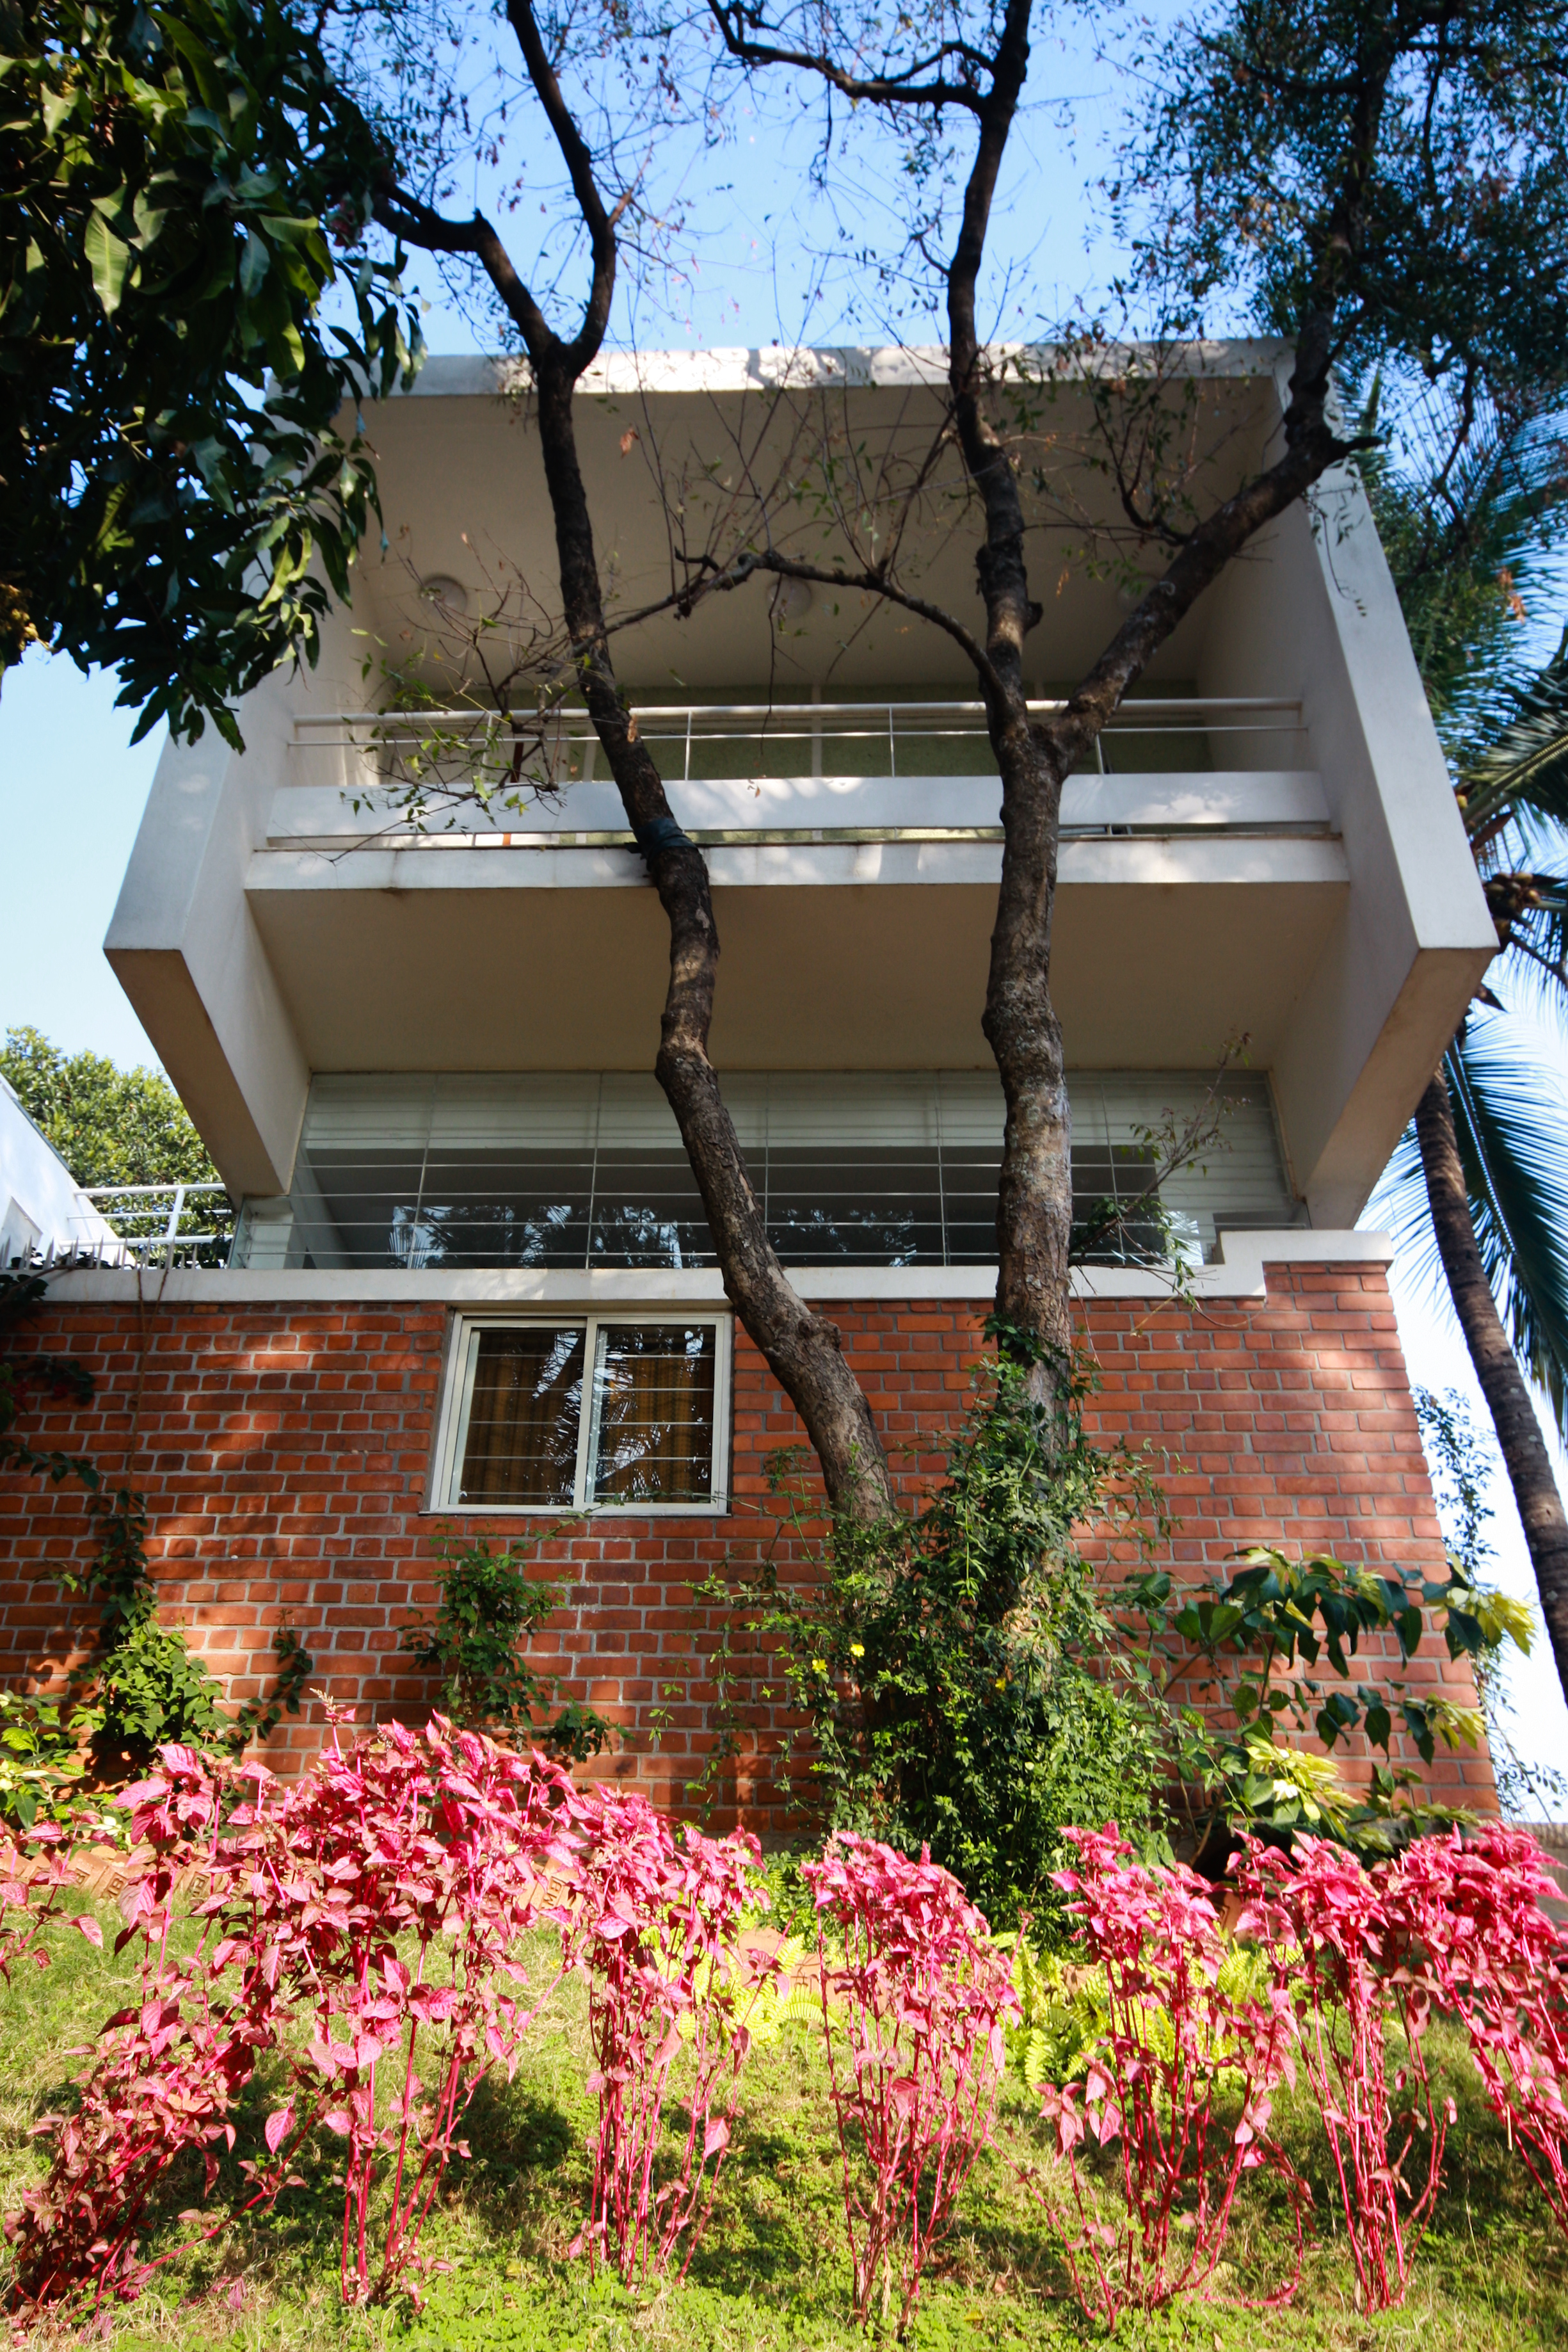 Close view of the red brick support structure rising from the garden, supporting one of the twin white structures beneath large upper balcony.